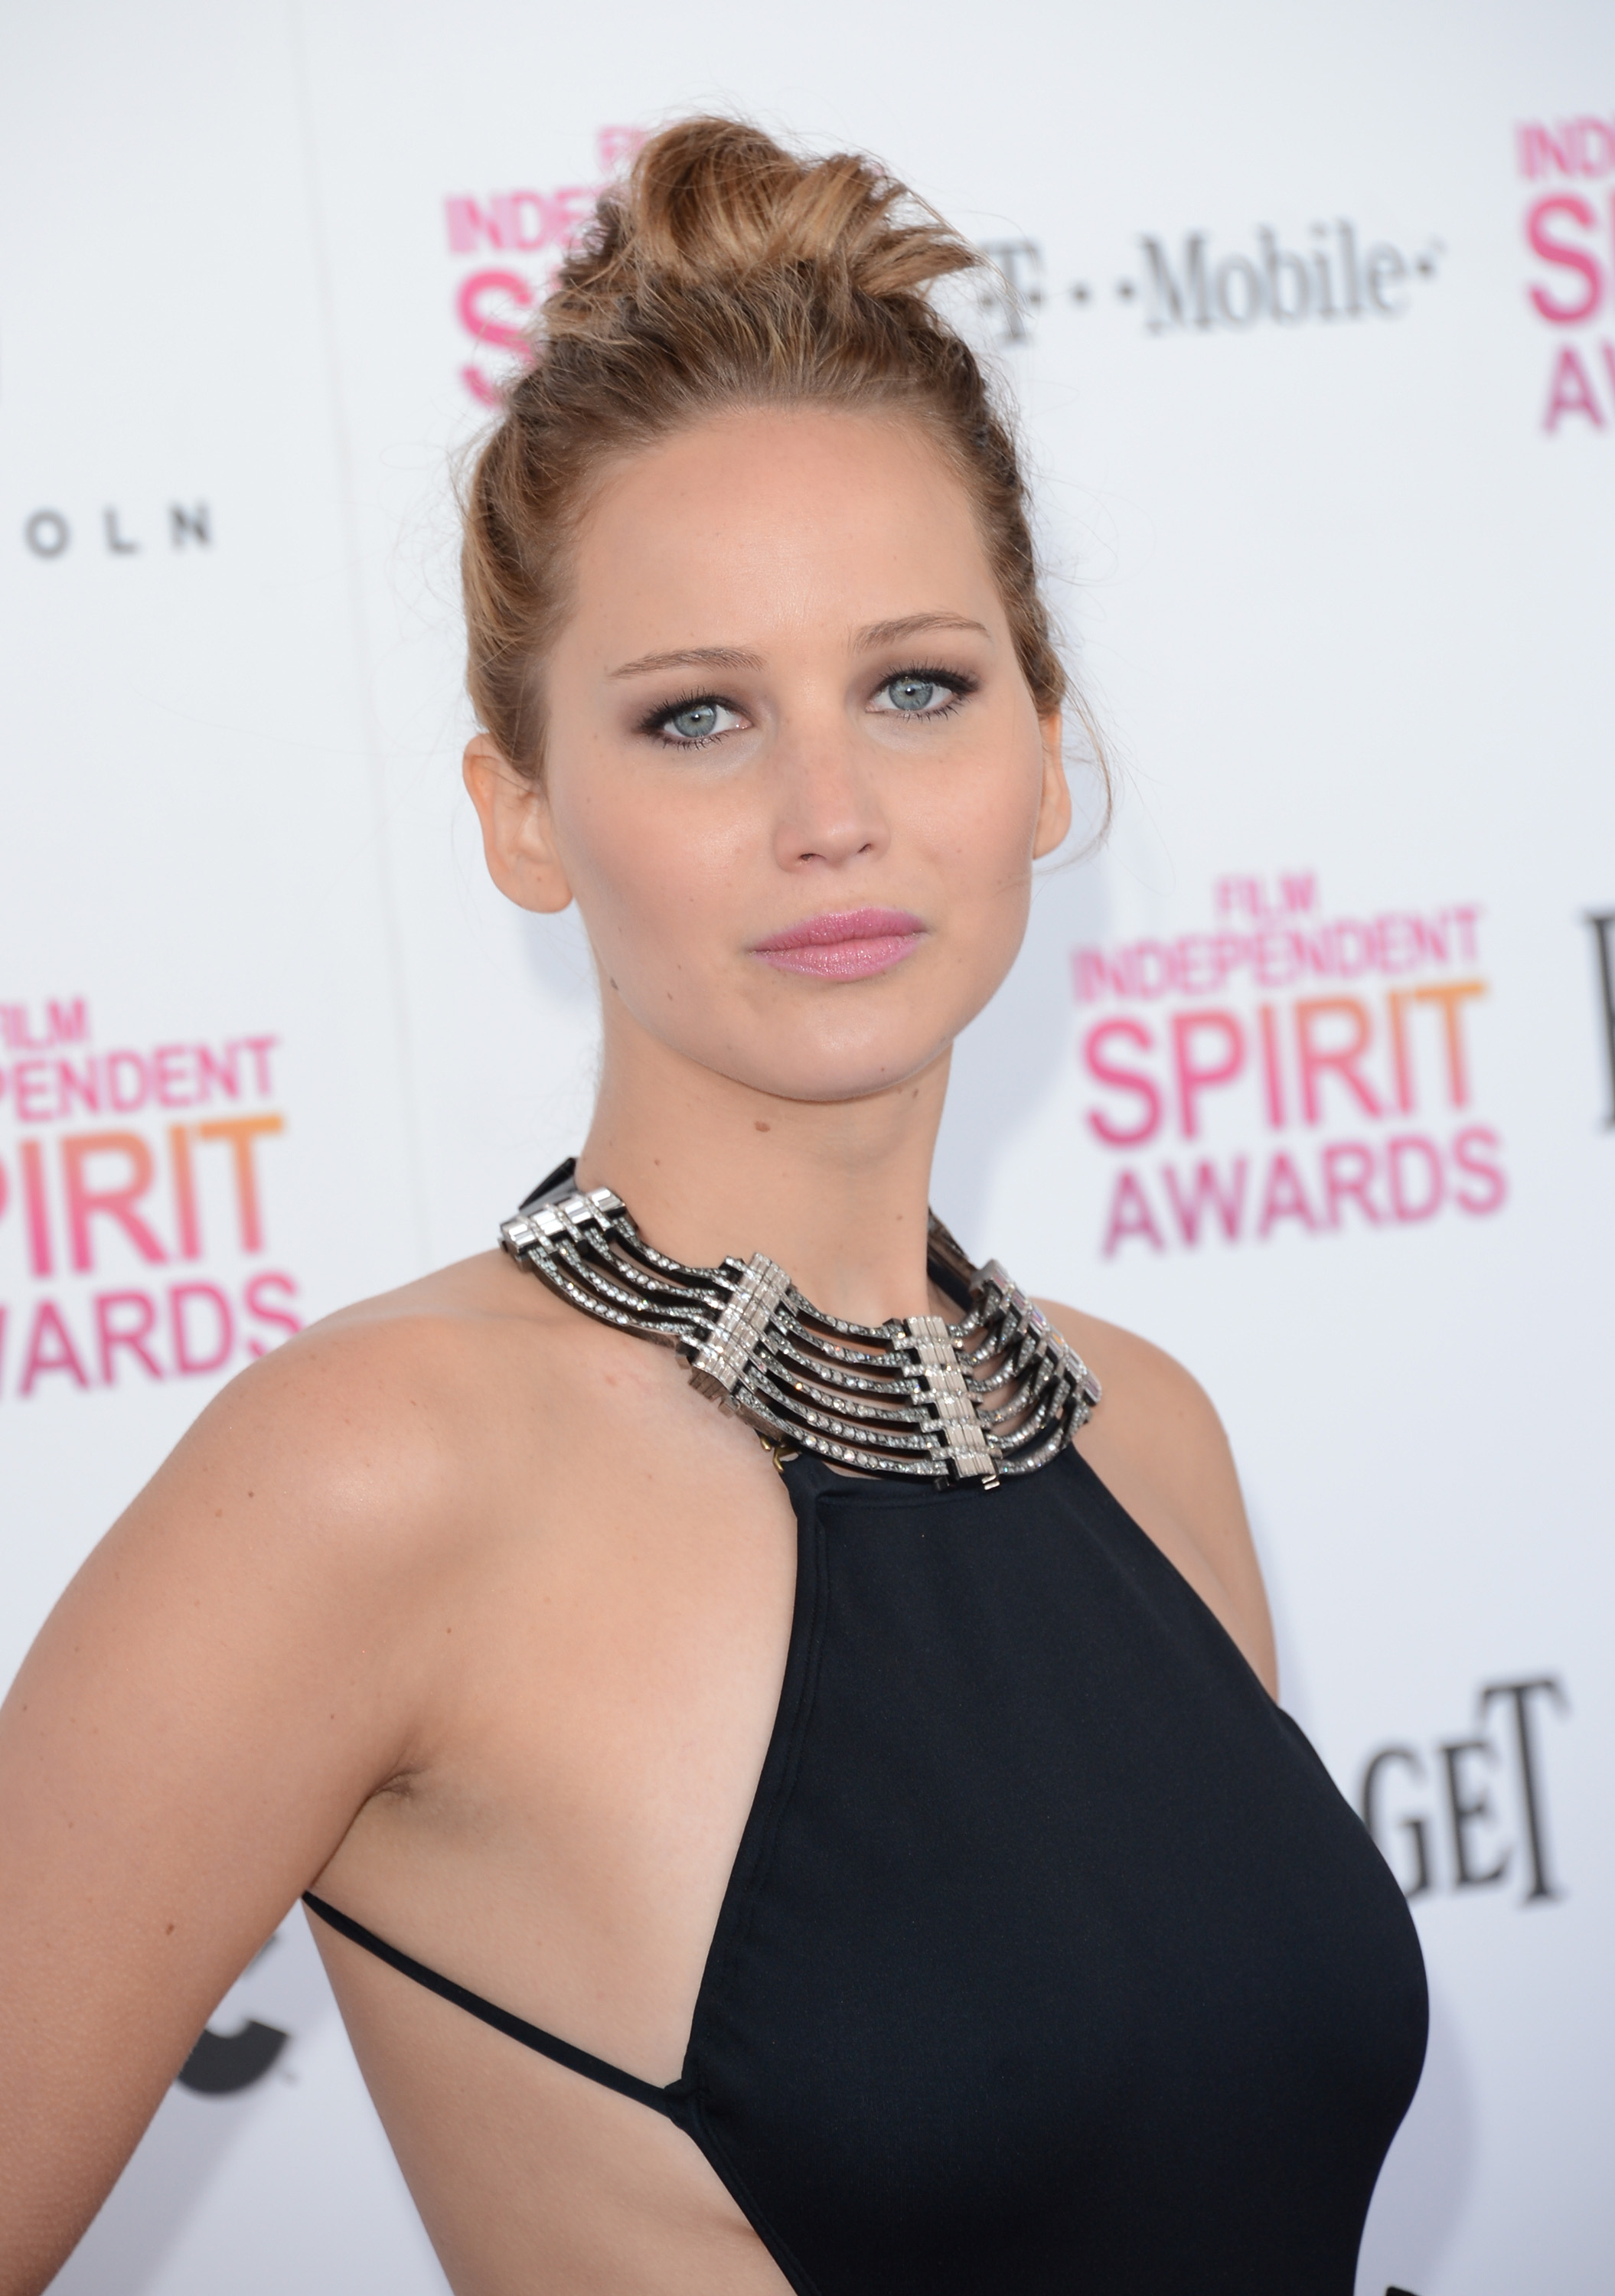 Jennifer Lawrence on the red carpet at the S